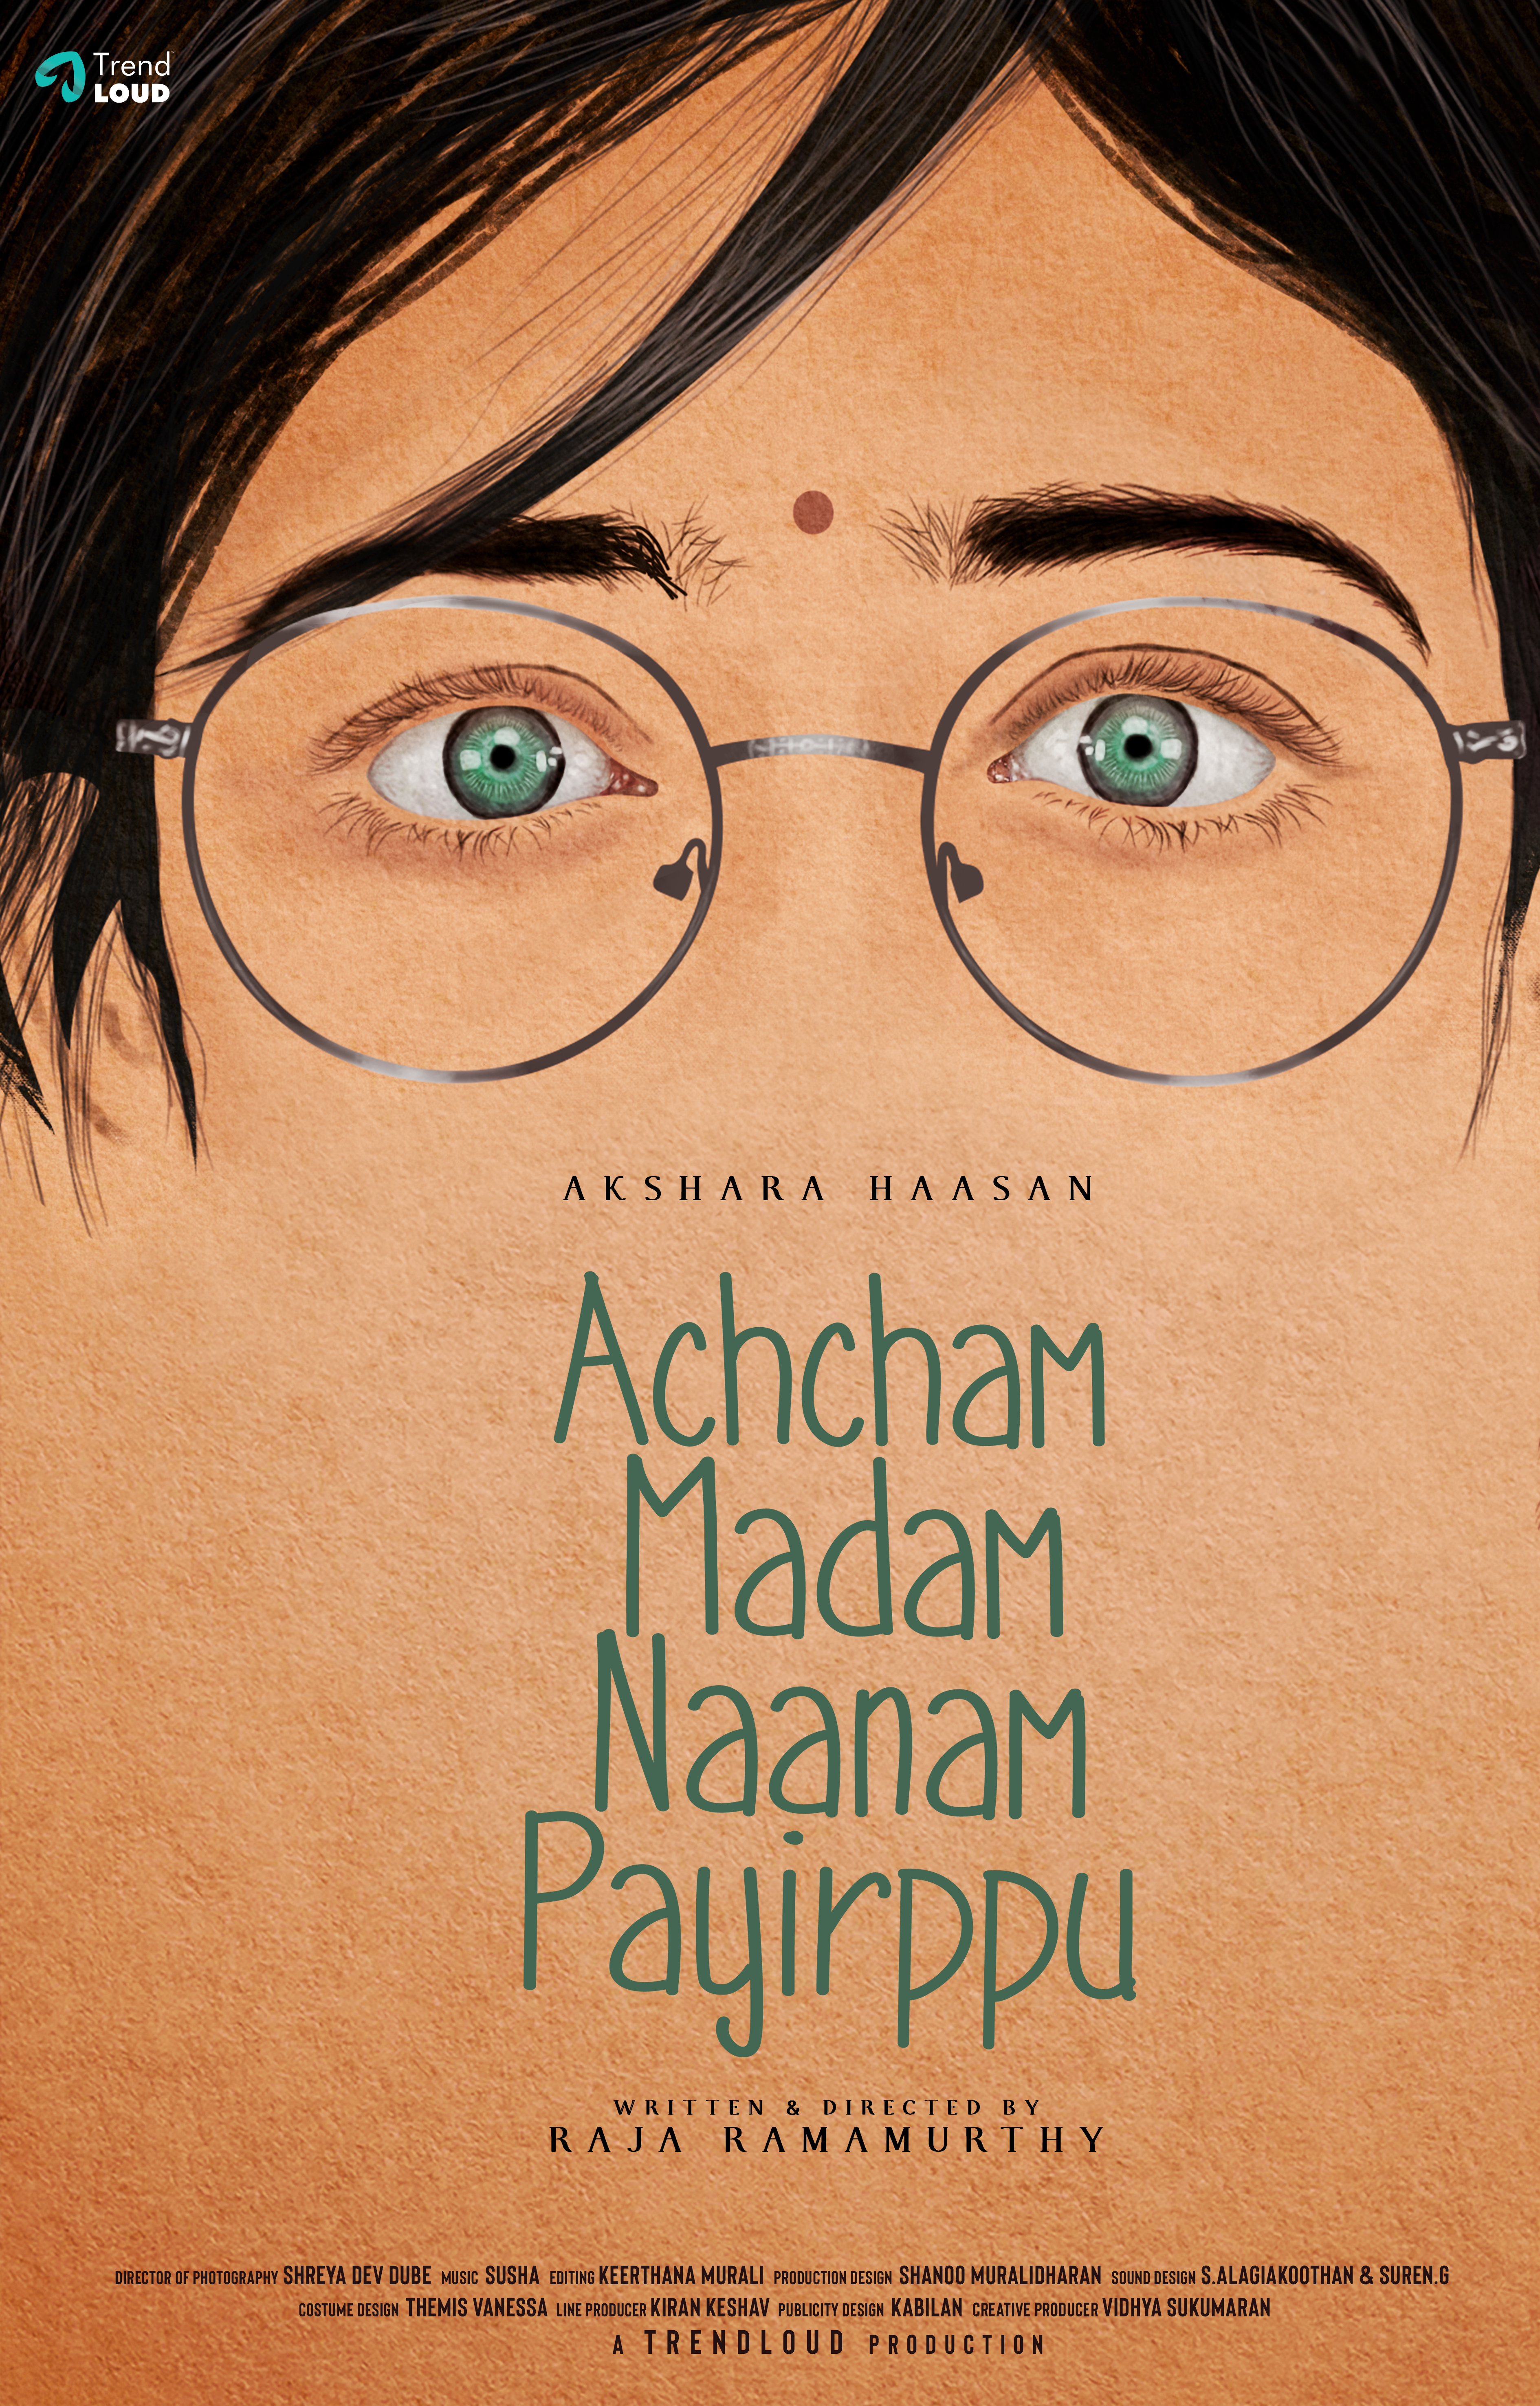 Achcham Madam Naanam Payirppu (Myth of a Good Girl)